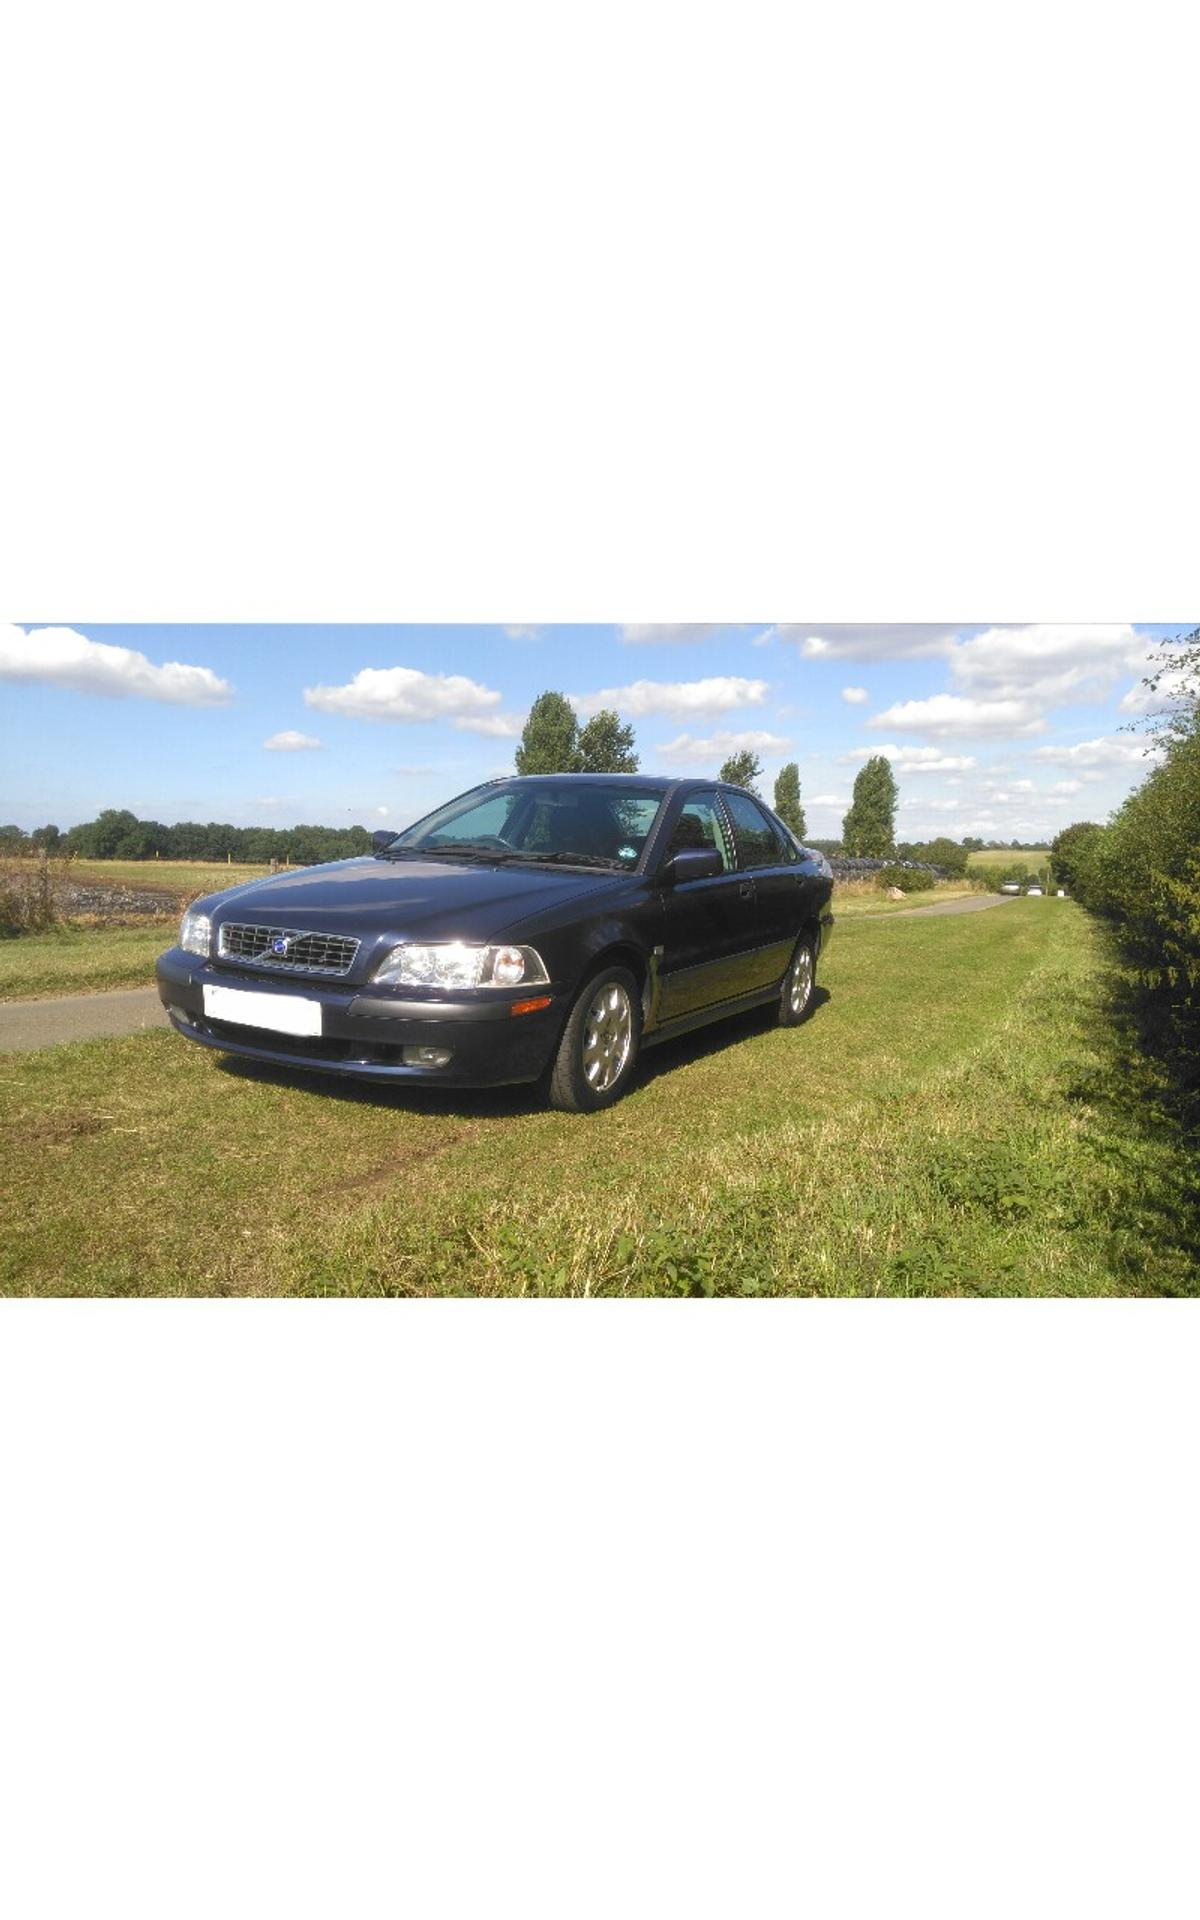 Volvo S40 1 6s VVT in NN3 Northampton for £800 00 for sale